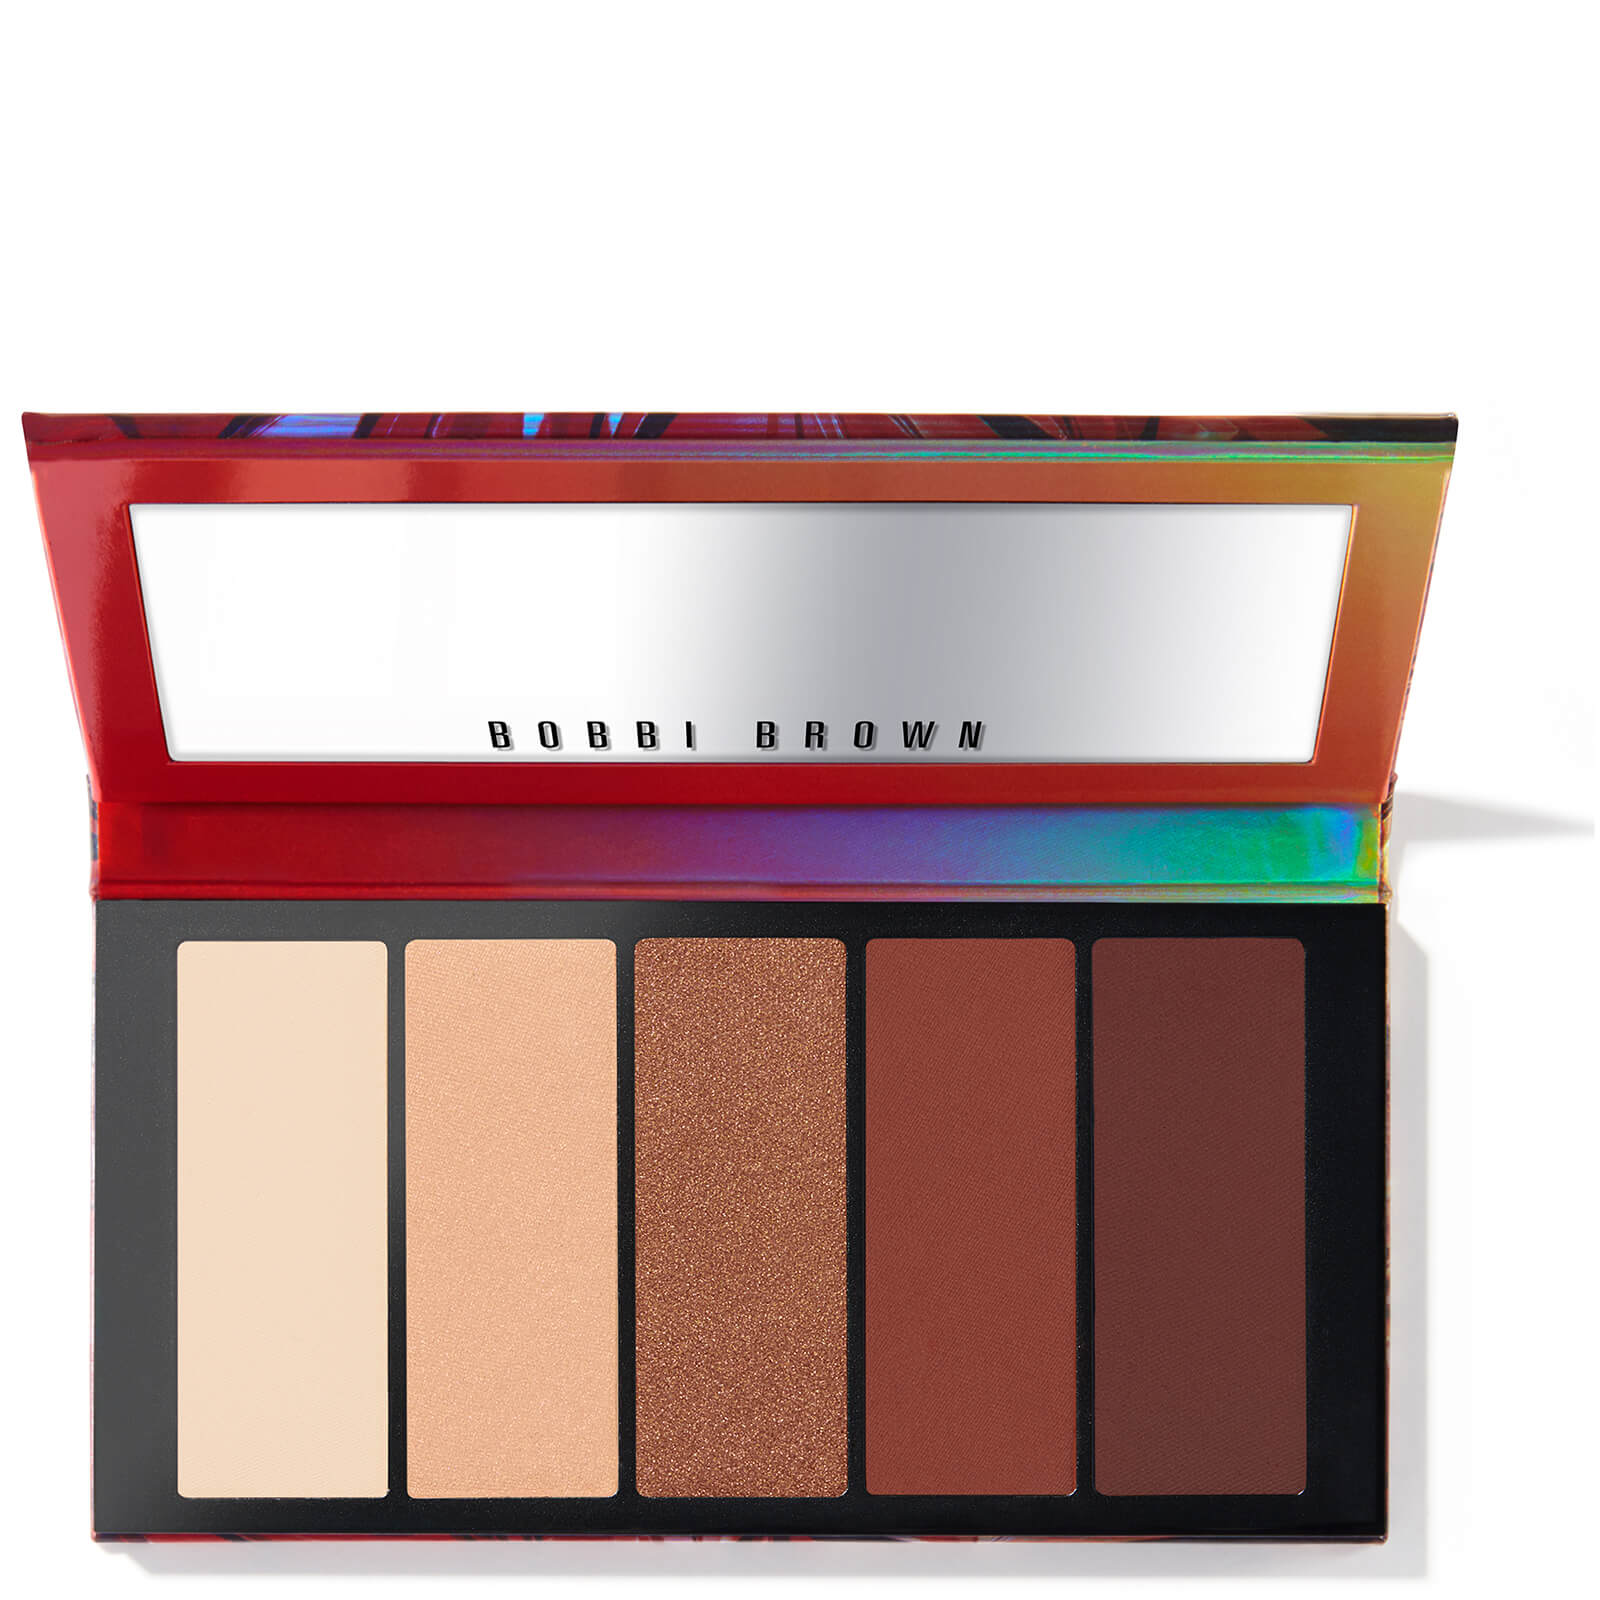 Bobbi Brown Eye Shadow Palette Fever Dream